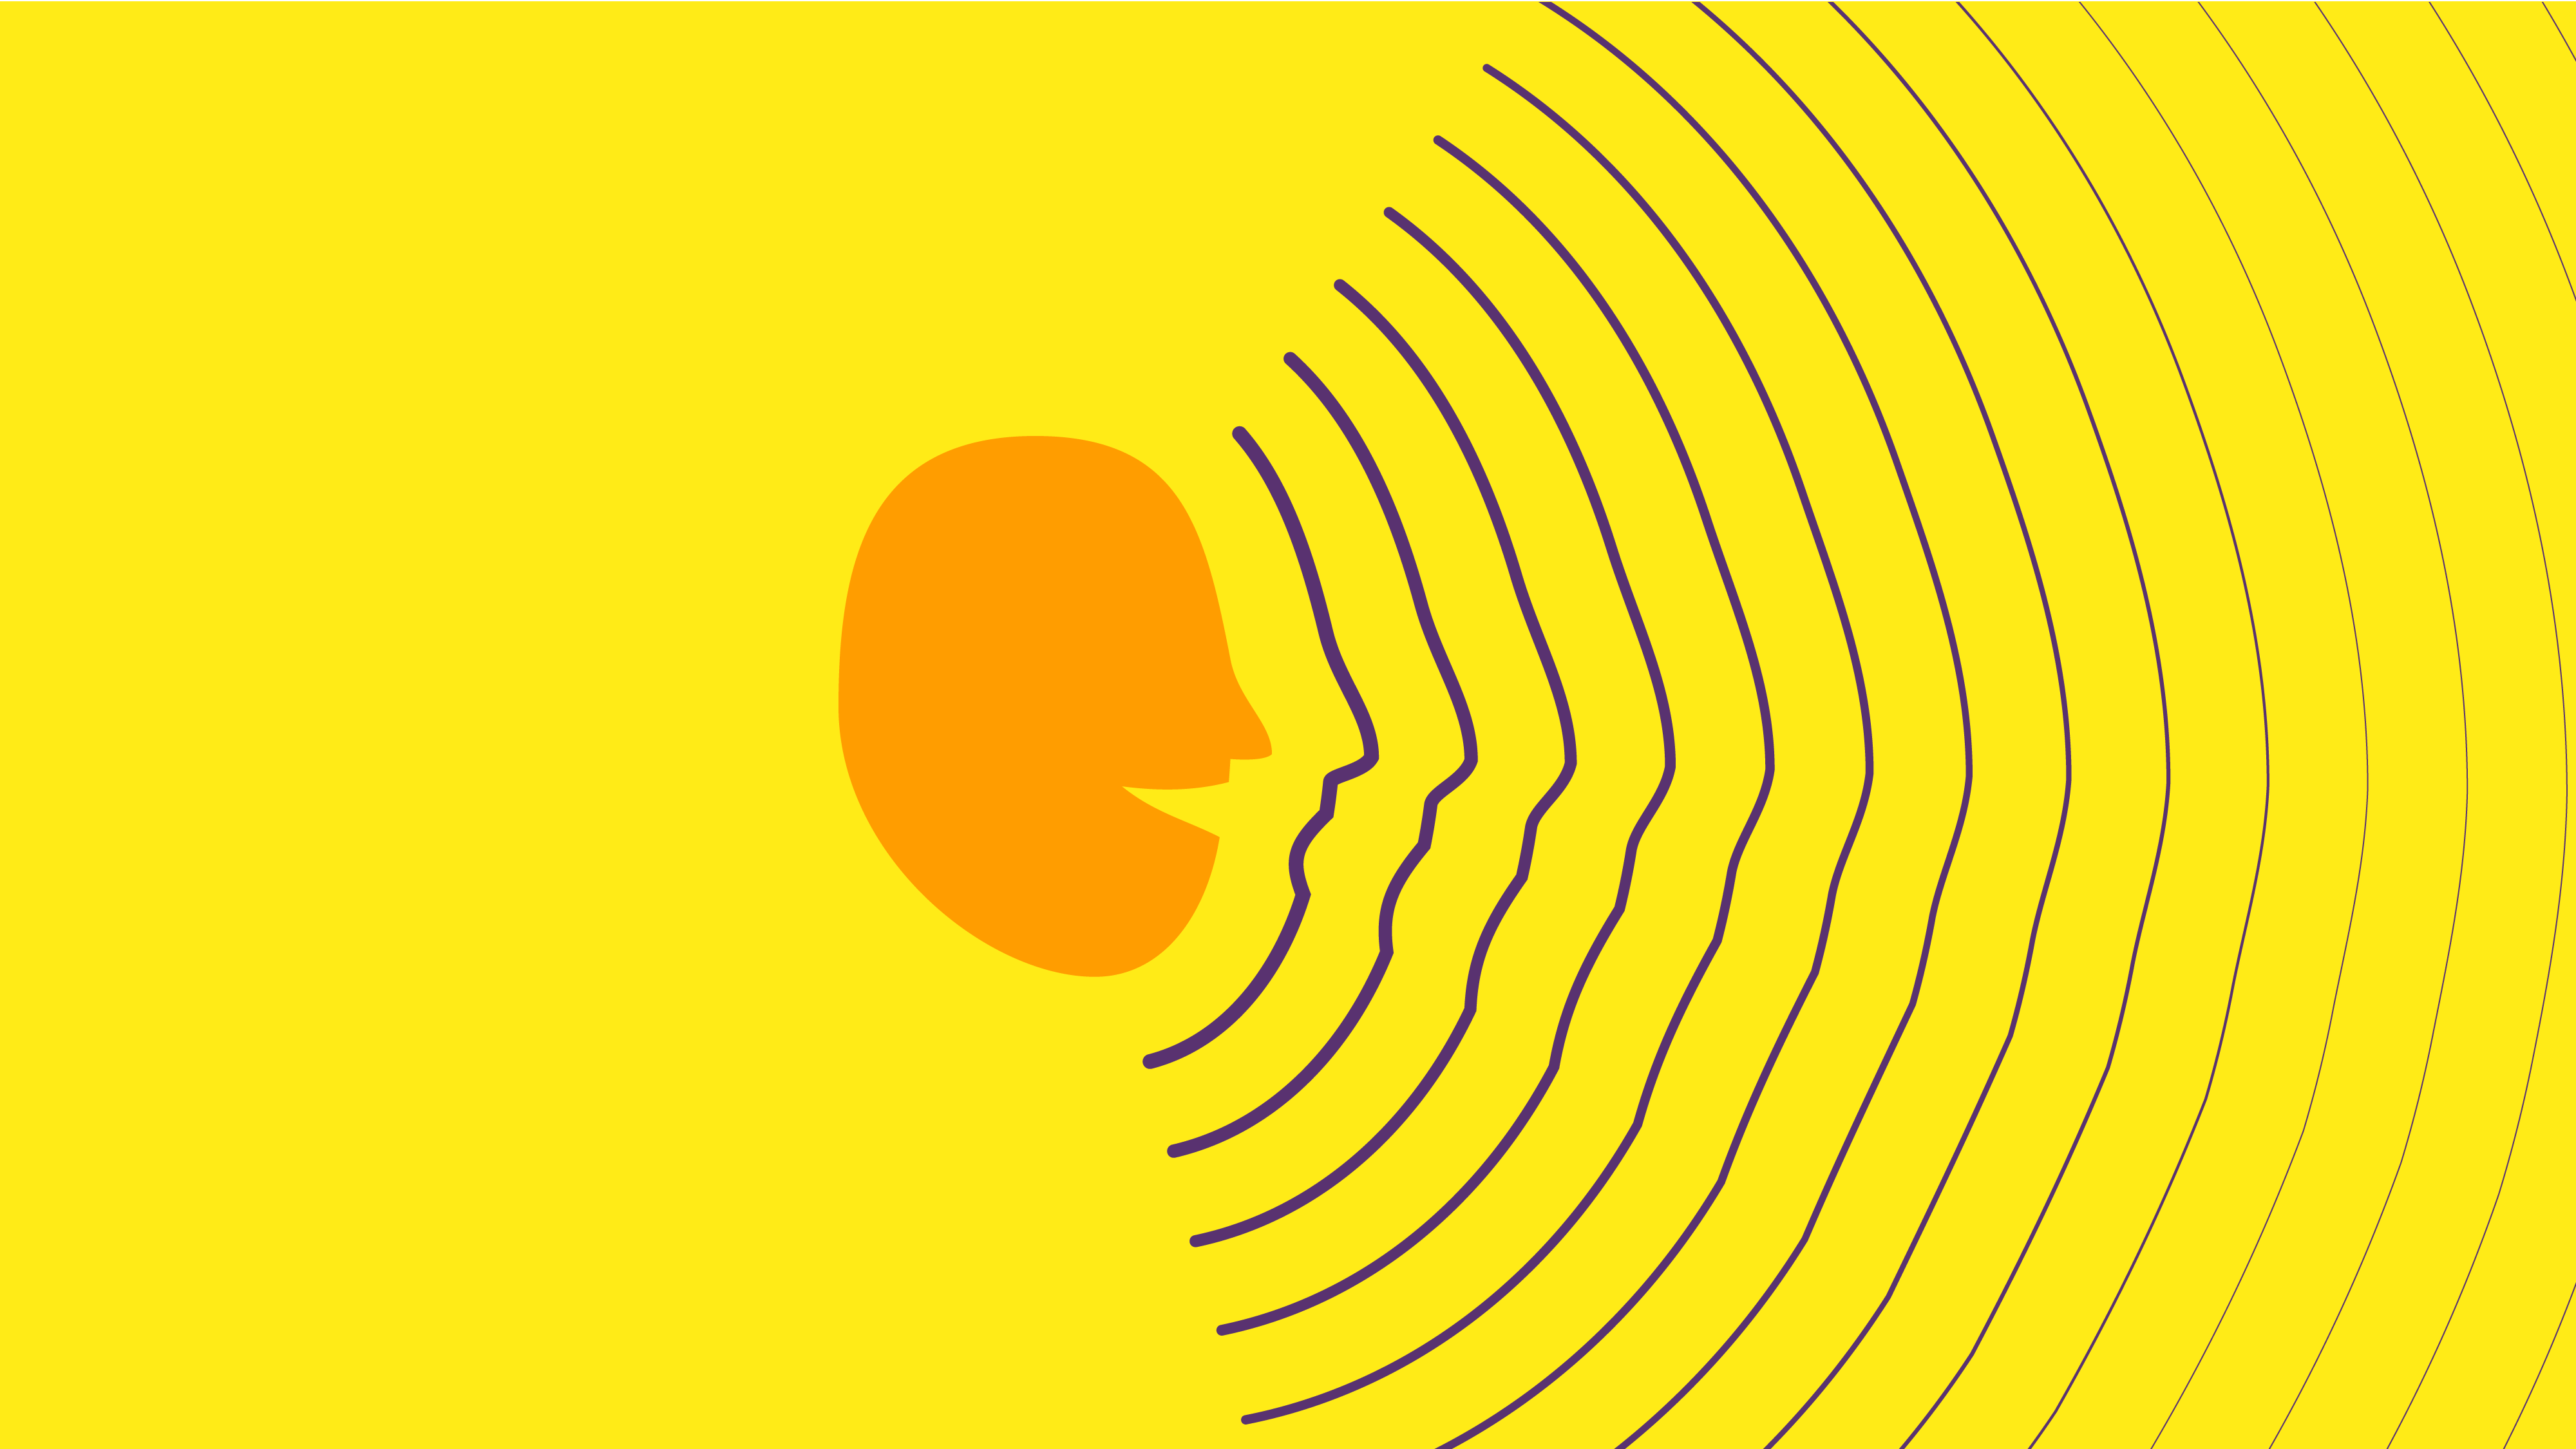 Adding voice control to your projects - Hackers at Cambridge - Medium